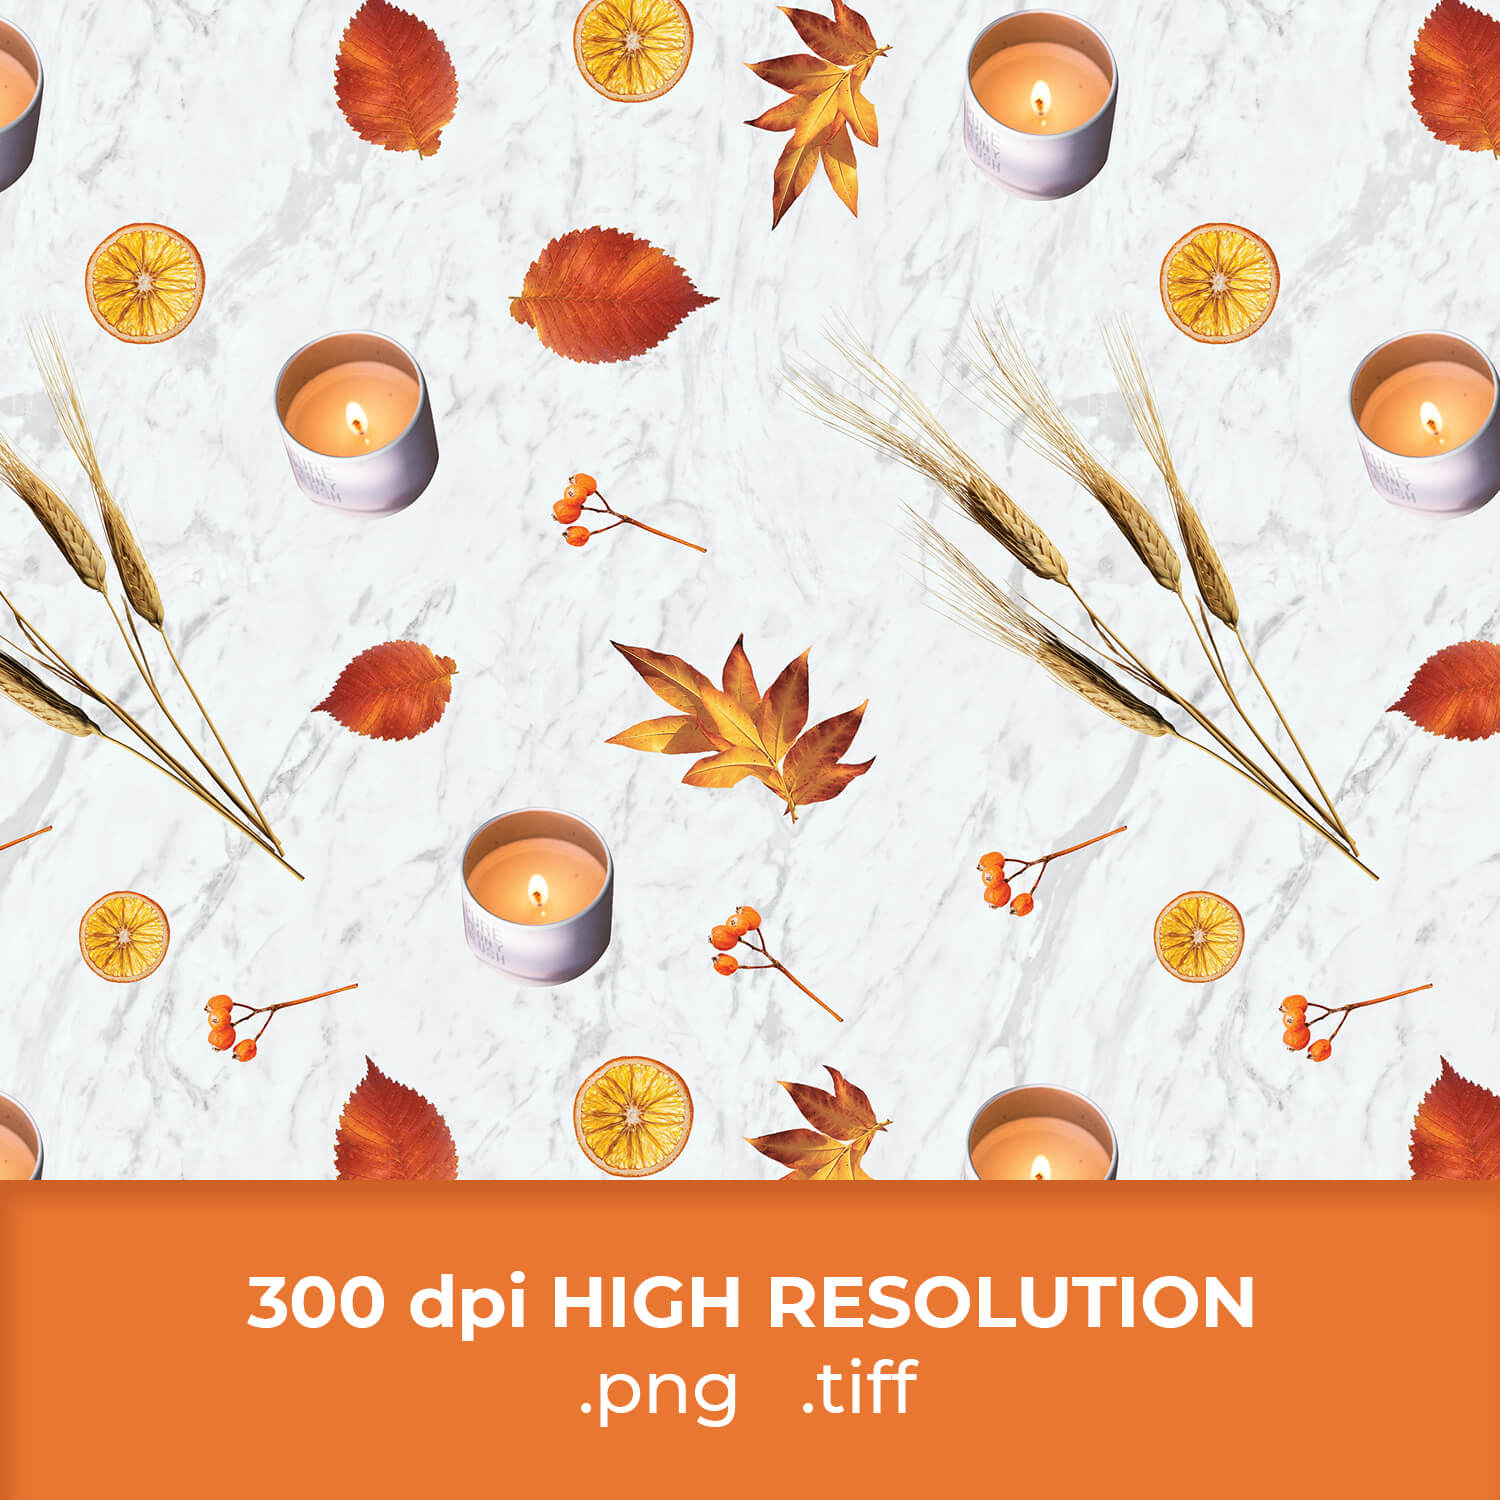 Free Thanksgiving Candle Pattern cover image.